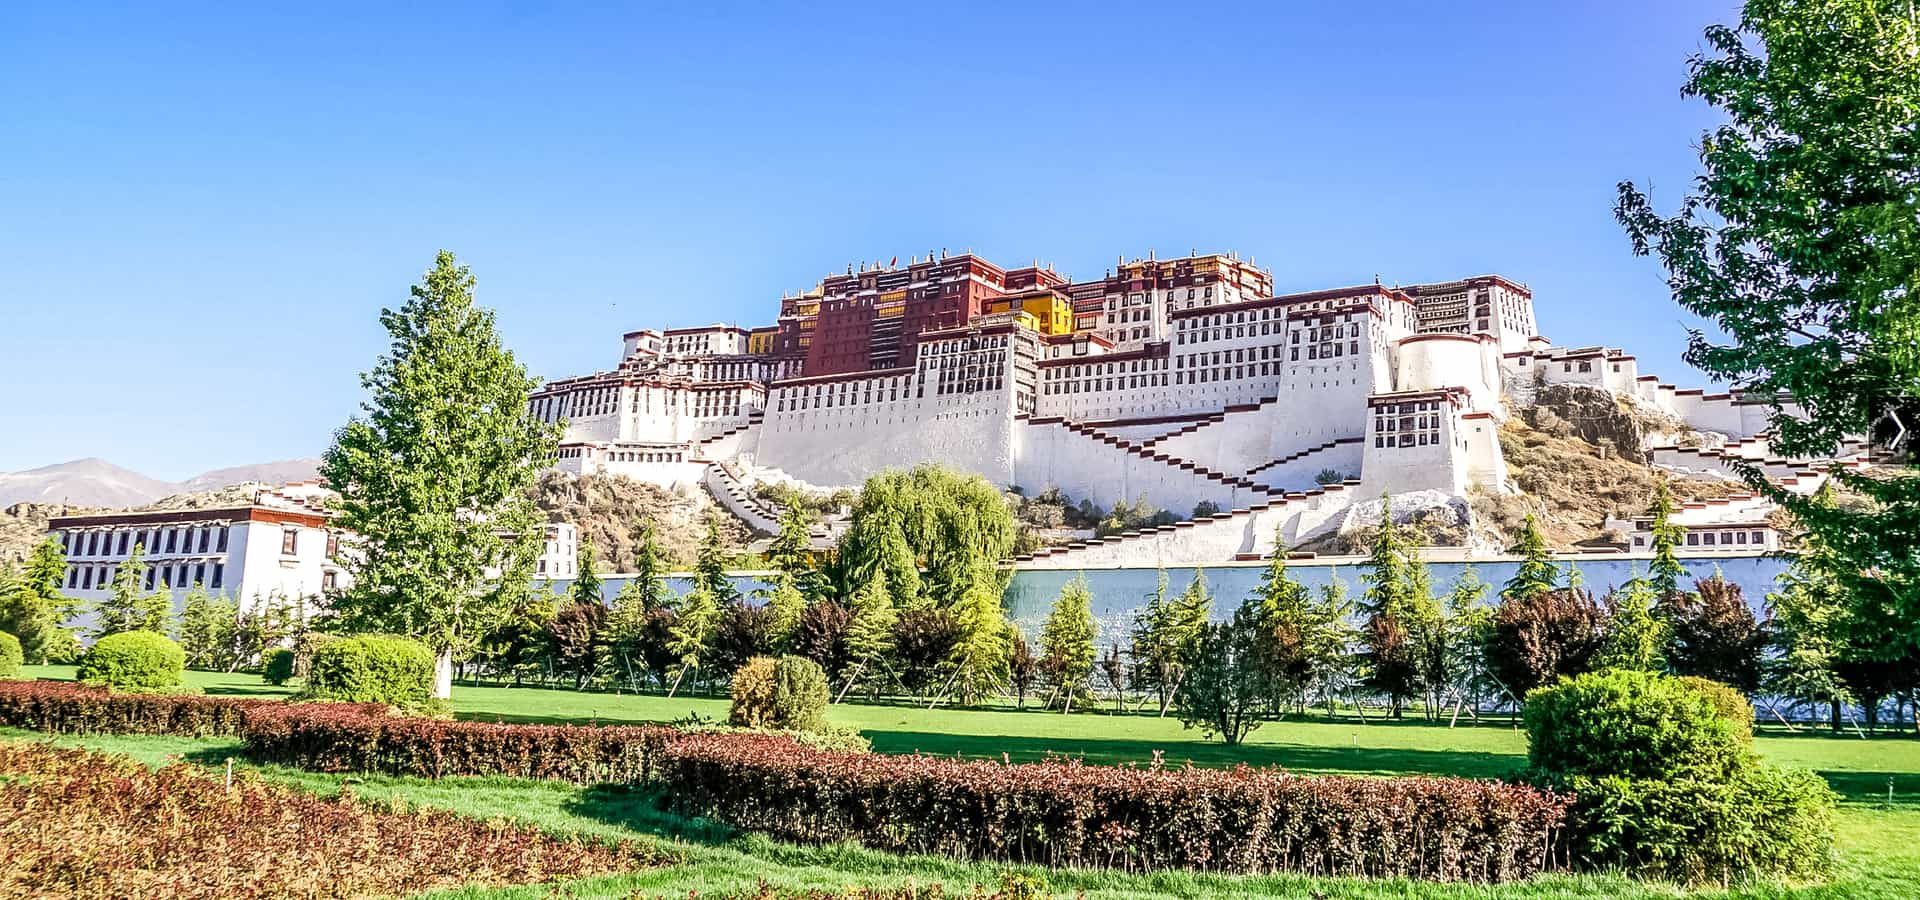 Lhasa Tibet Tour 2 Night 3 Days Tour From Kathmandu Nepal